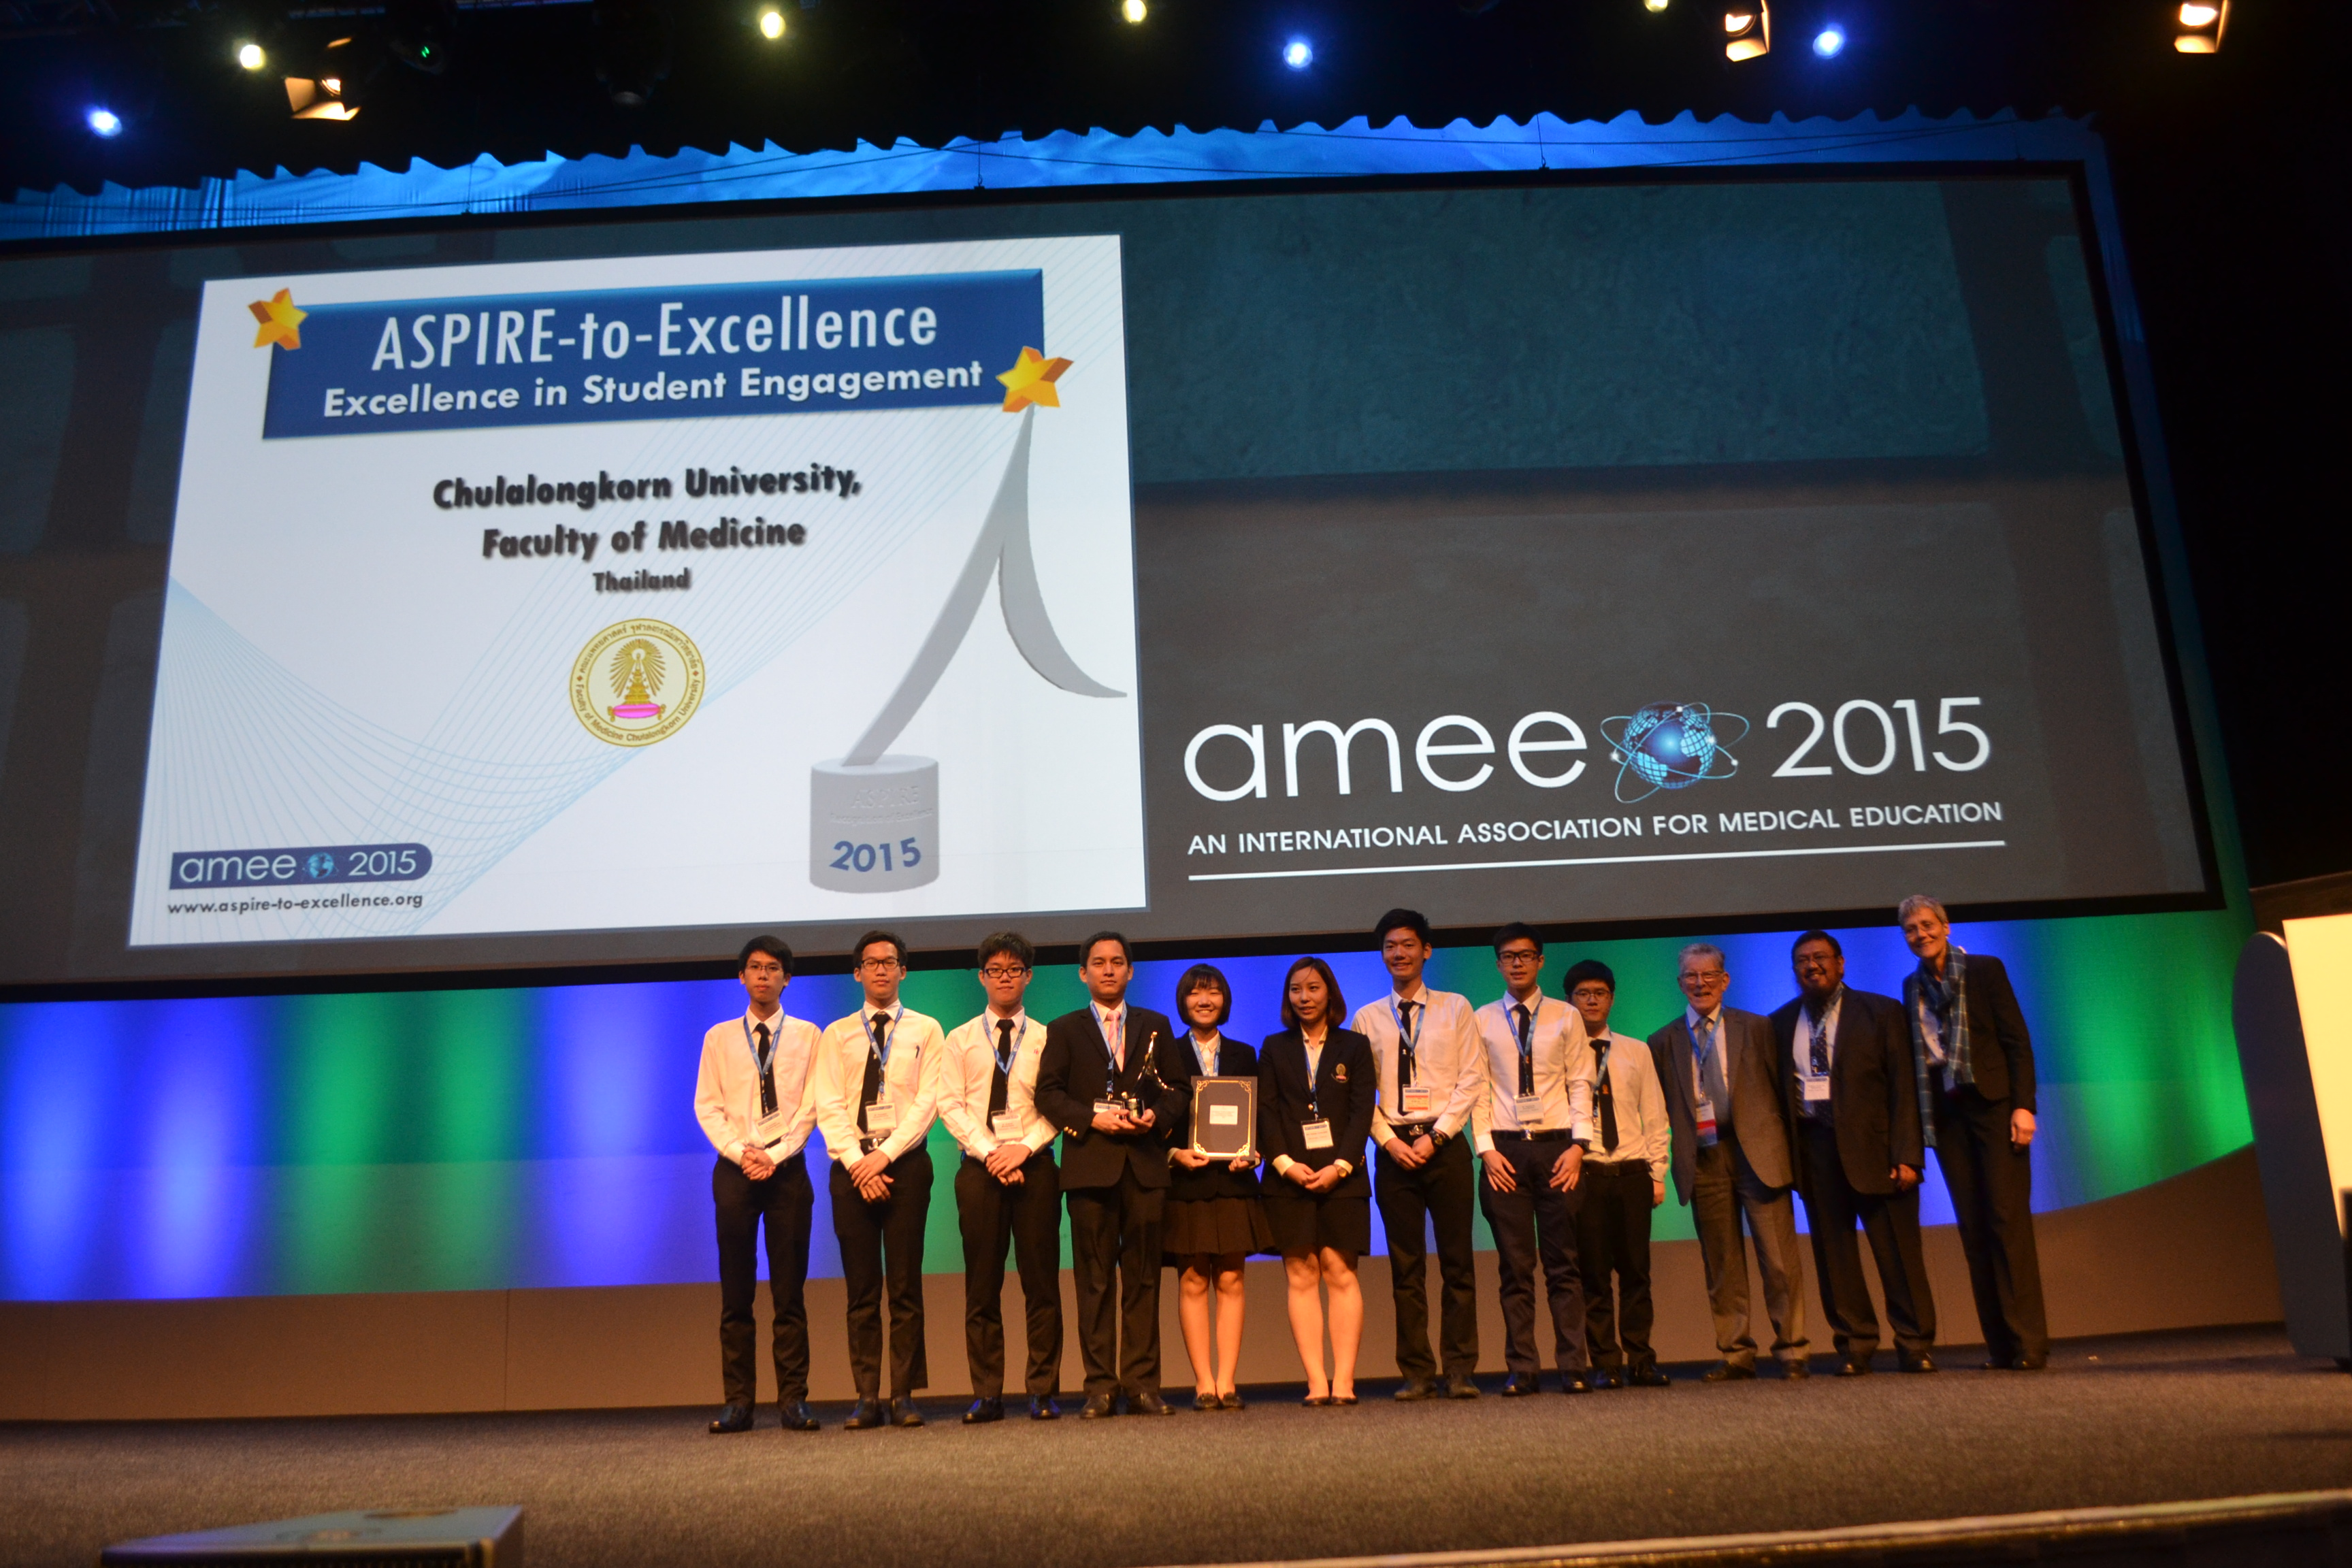 AMEE 2015 - ASPIRE-to-Excellence Student Awards - 054_Chulalongkorn.JPG